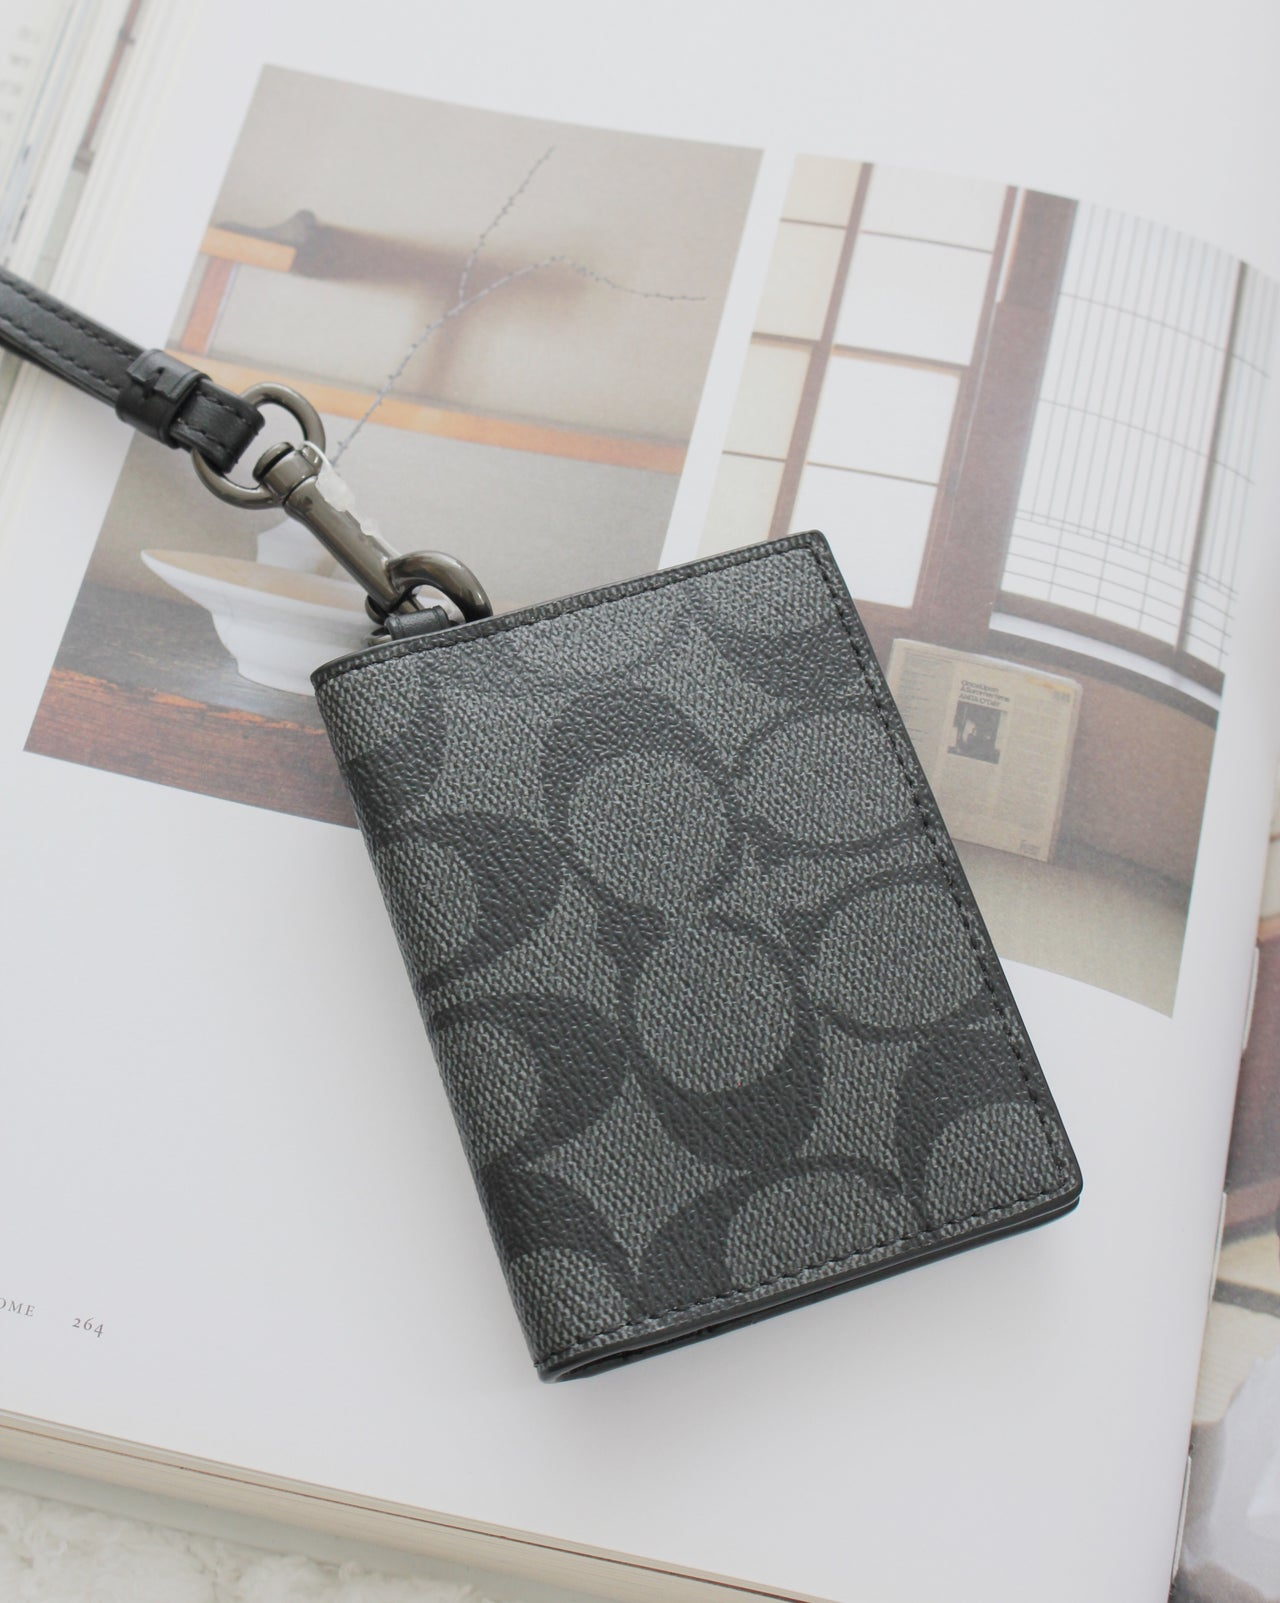 COACH ID CARD CASE LANYARD IN SIGNATURE CANVAS - LovelyMadness Clothing Online Fashion Malaysia